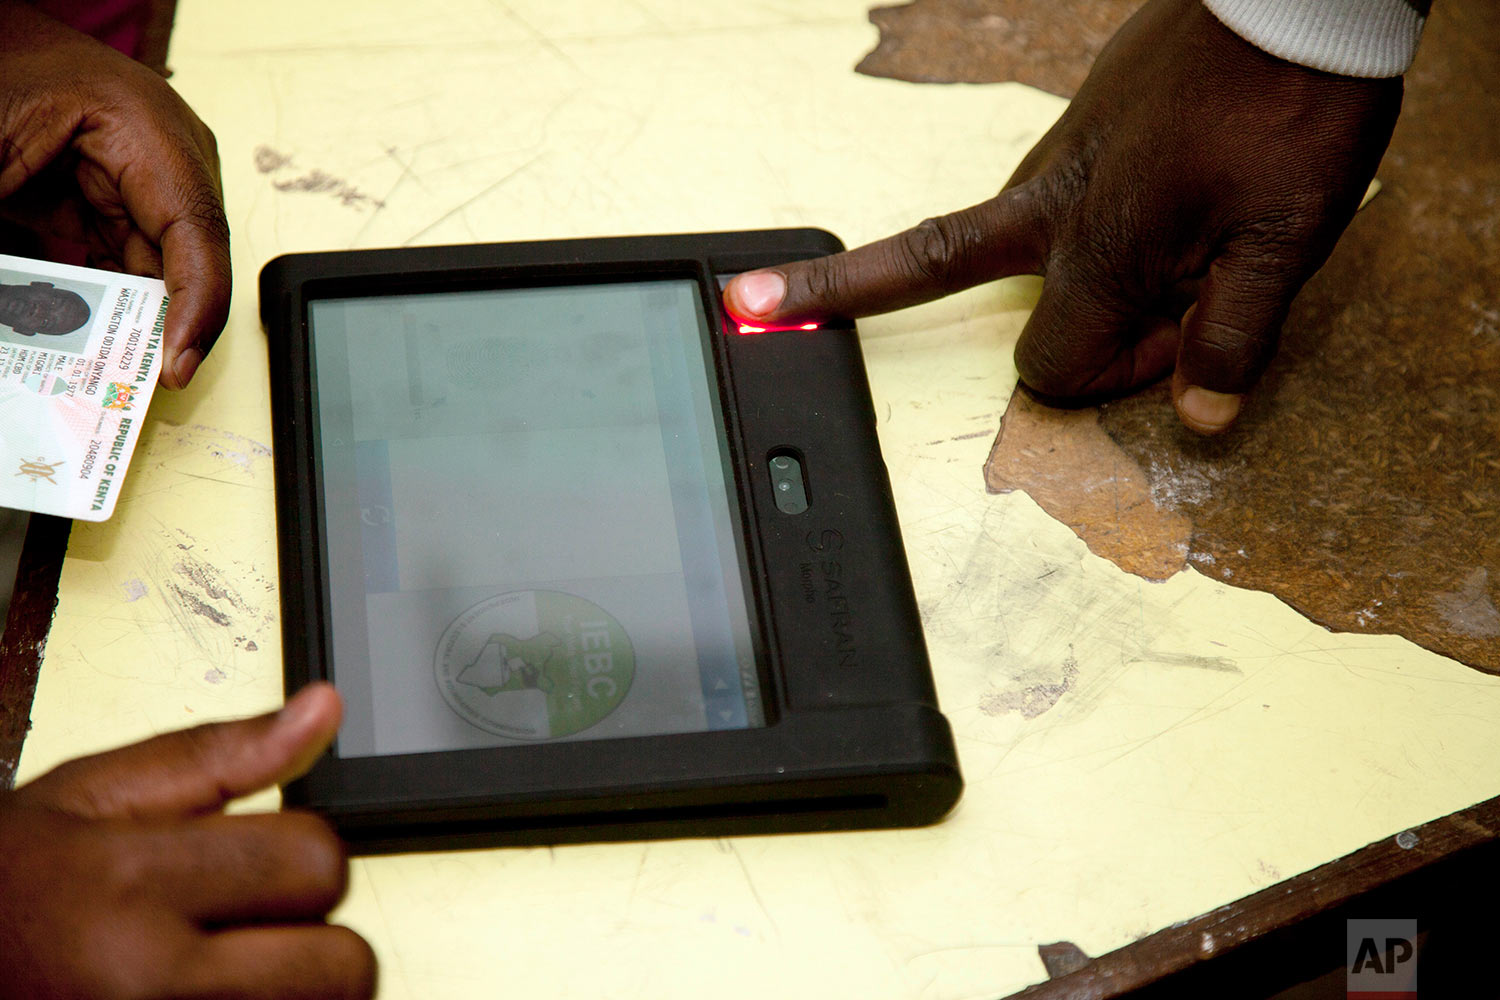 A Kenyan goes through vetting to cast his vote at a polling station in Nairobi, Kenya, Tuesday, Aug. 8, 2017. Kenyans are going to the polls to vote in a general election after a tightly fought presidential race between incumbent President Uhuru Kenyatta and main opposition leader Raila Odinga. (AP Photo/ Sayyid Abdul Azim)